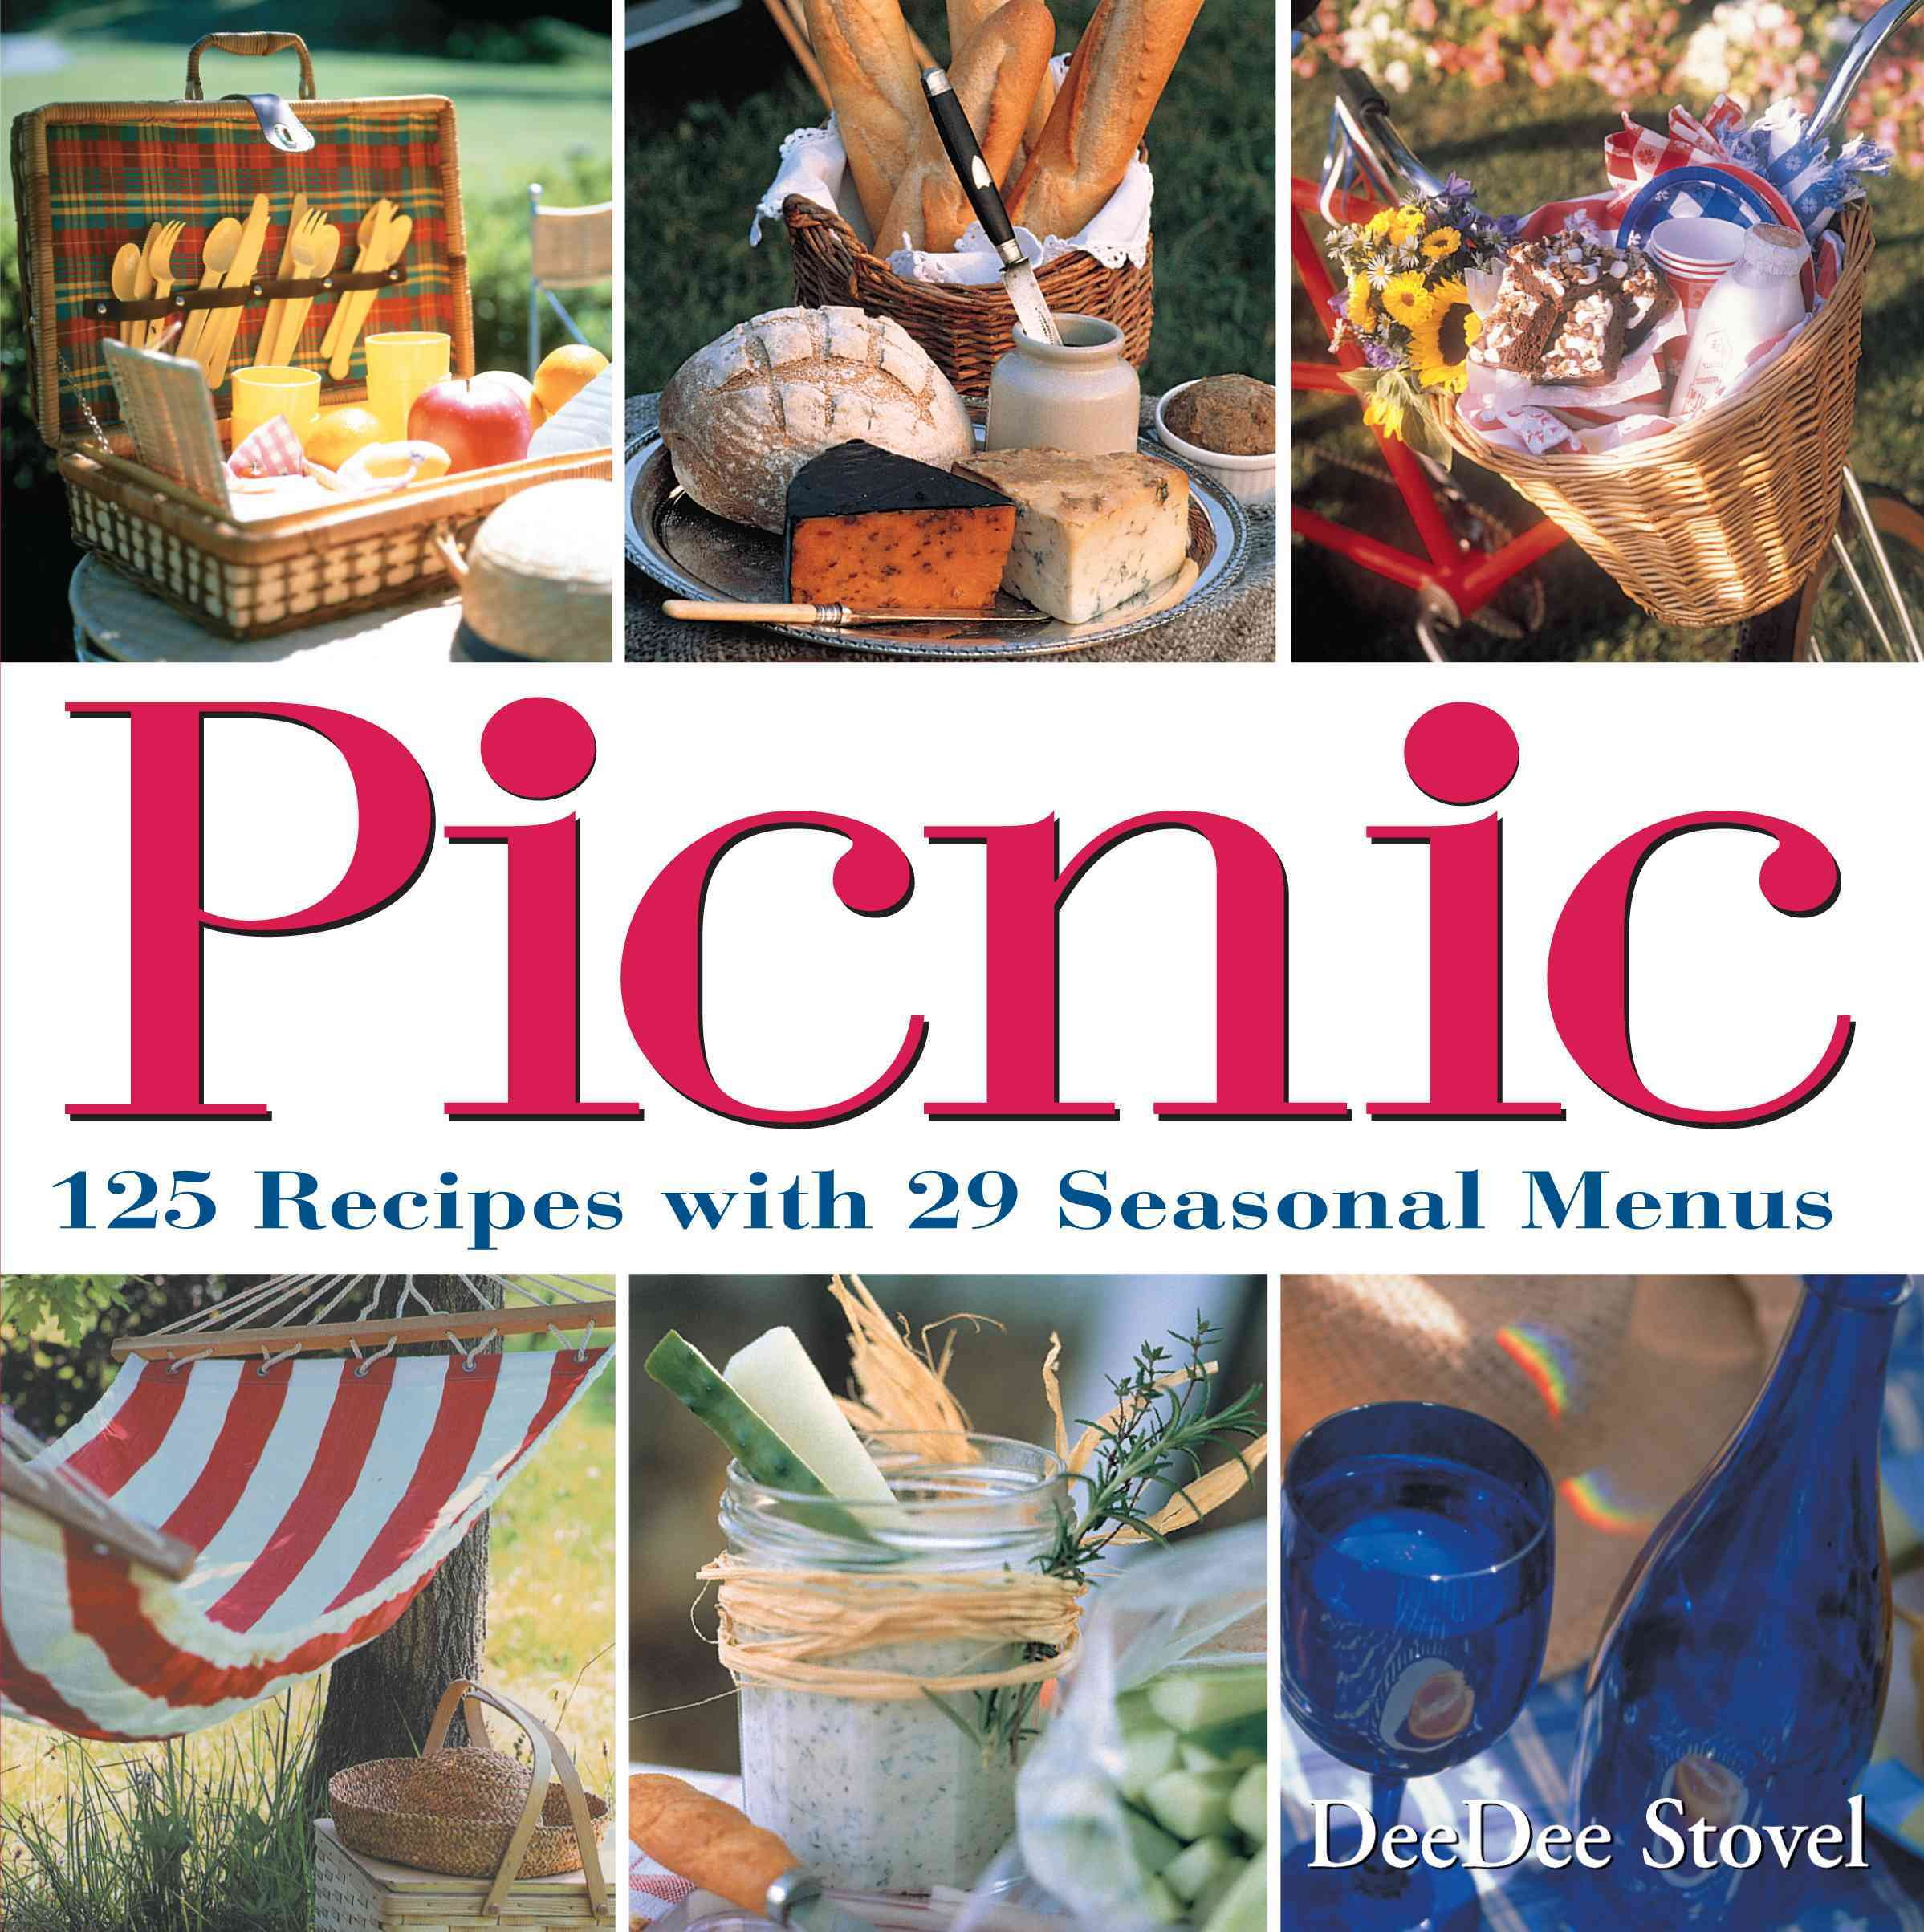 Picnic: 125 Recipes With 29 Seasonal Menus (Paperback)